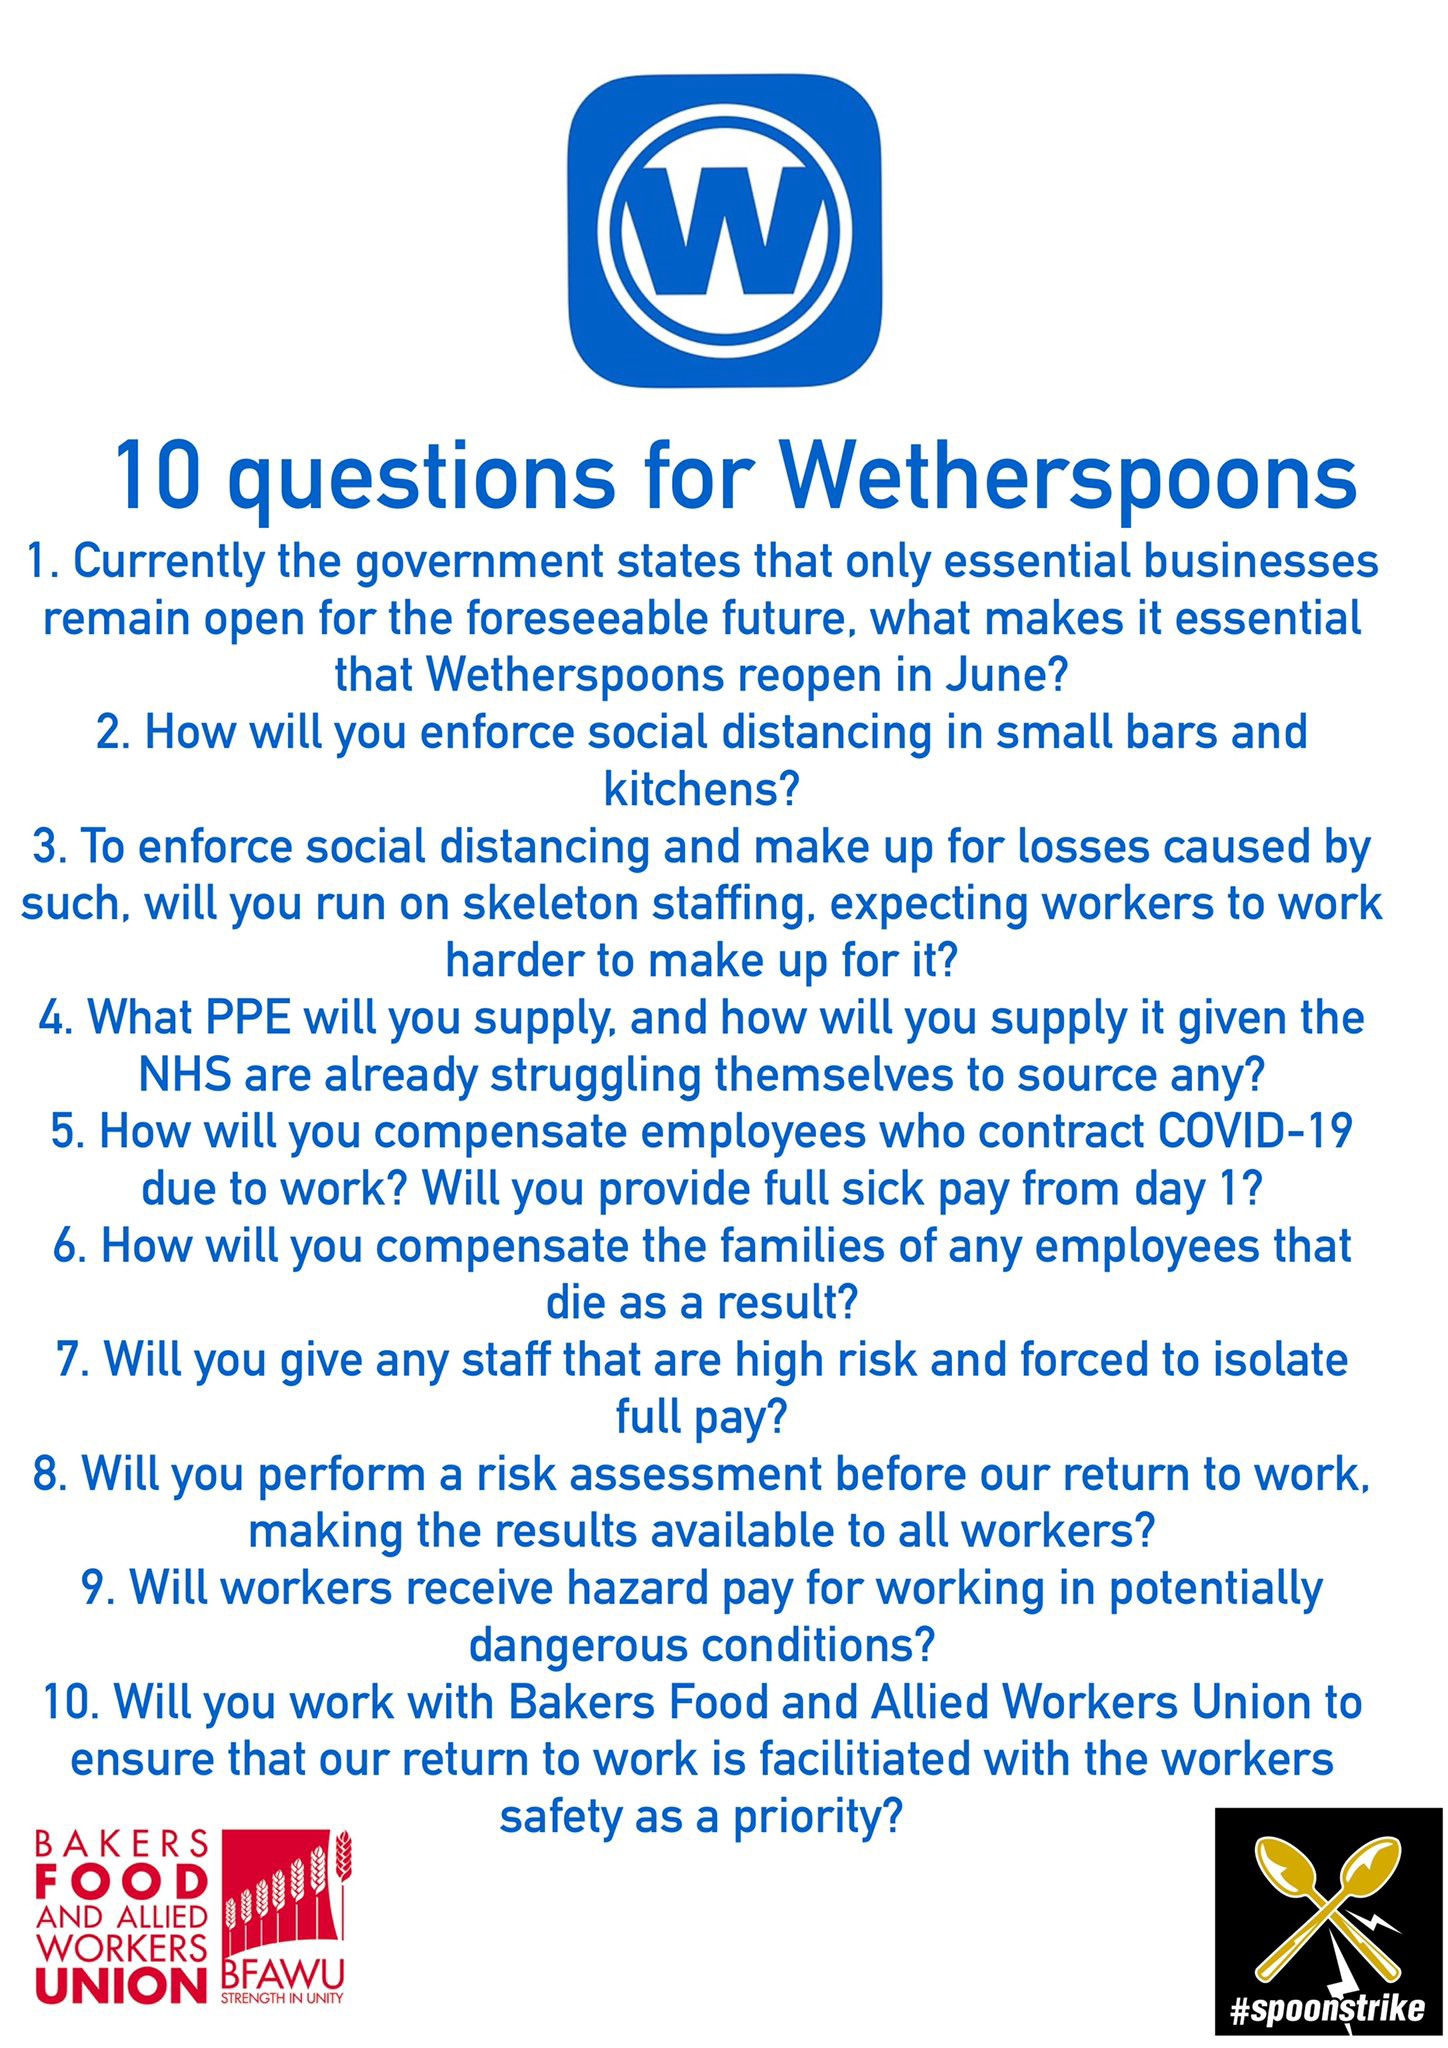 10 Questions for Wetherspoons